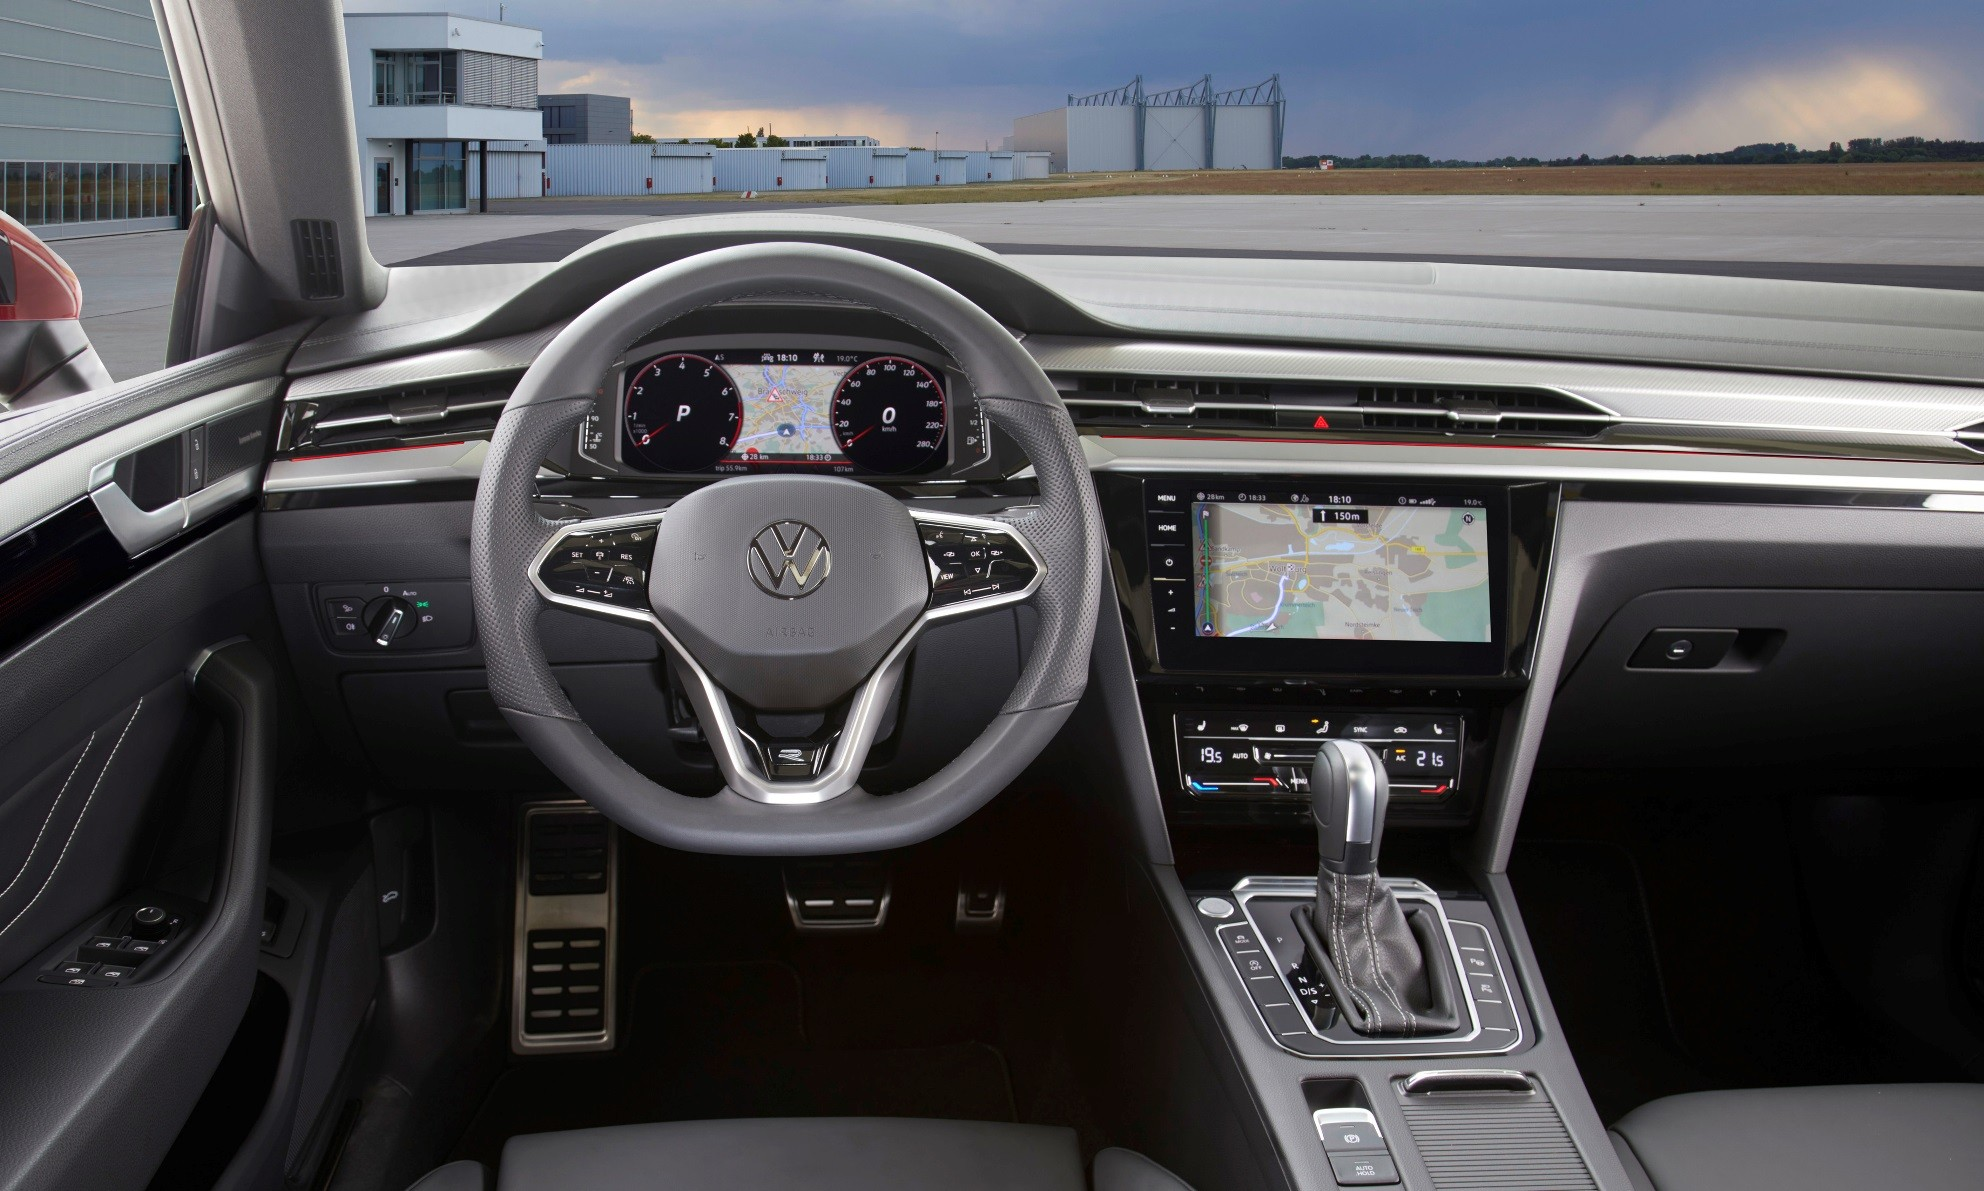 Facelifted VW Arteon interior